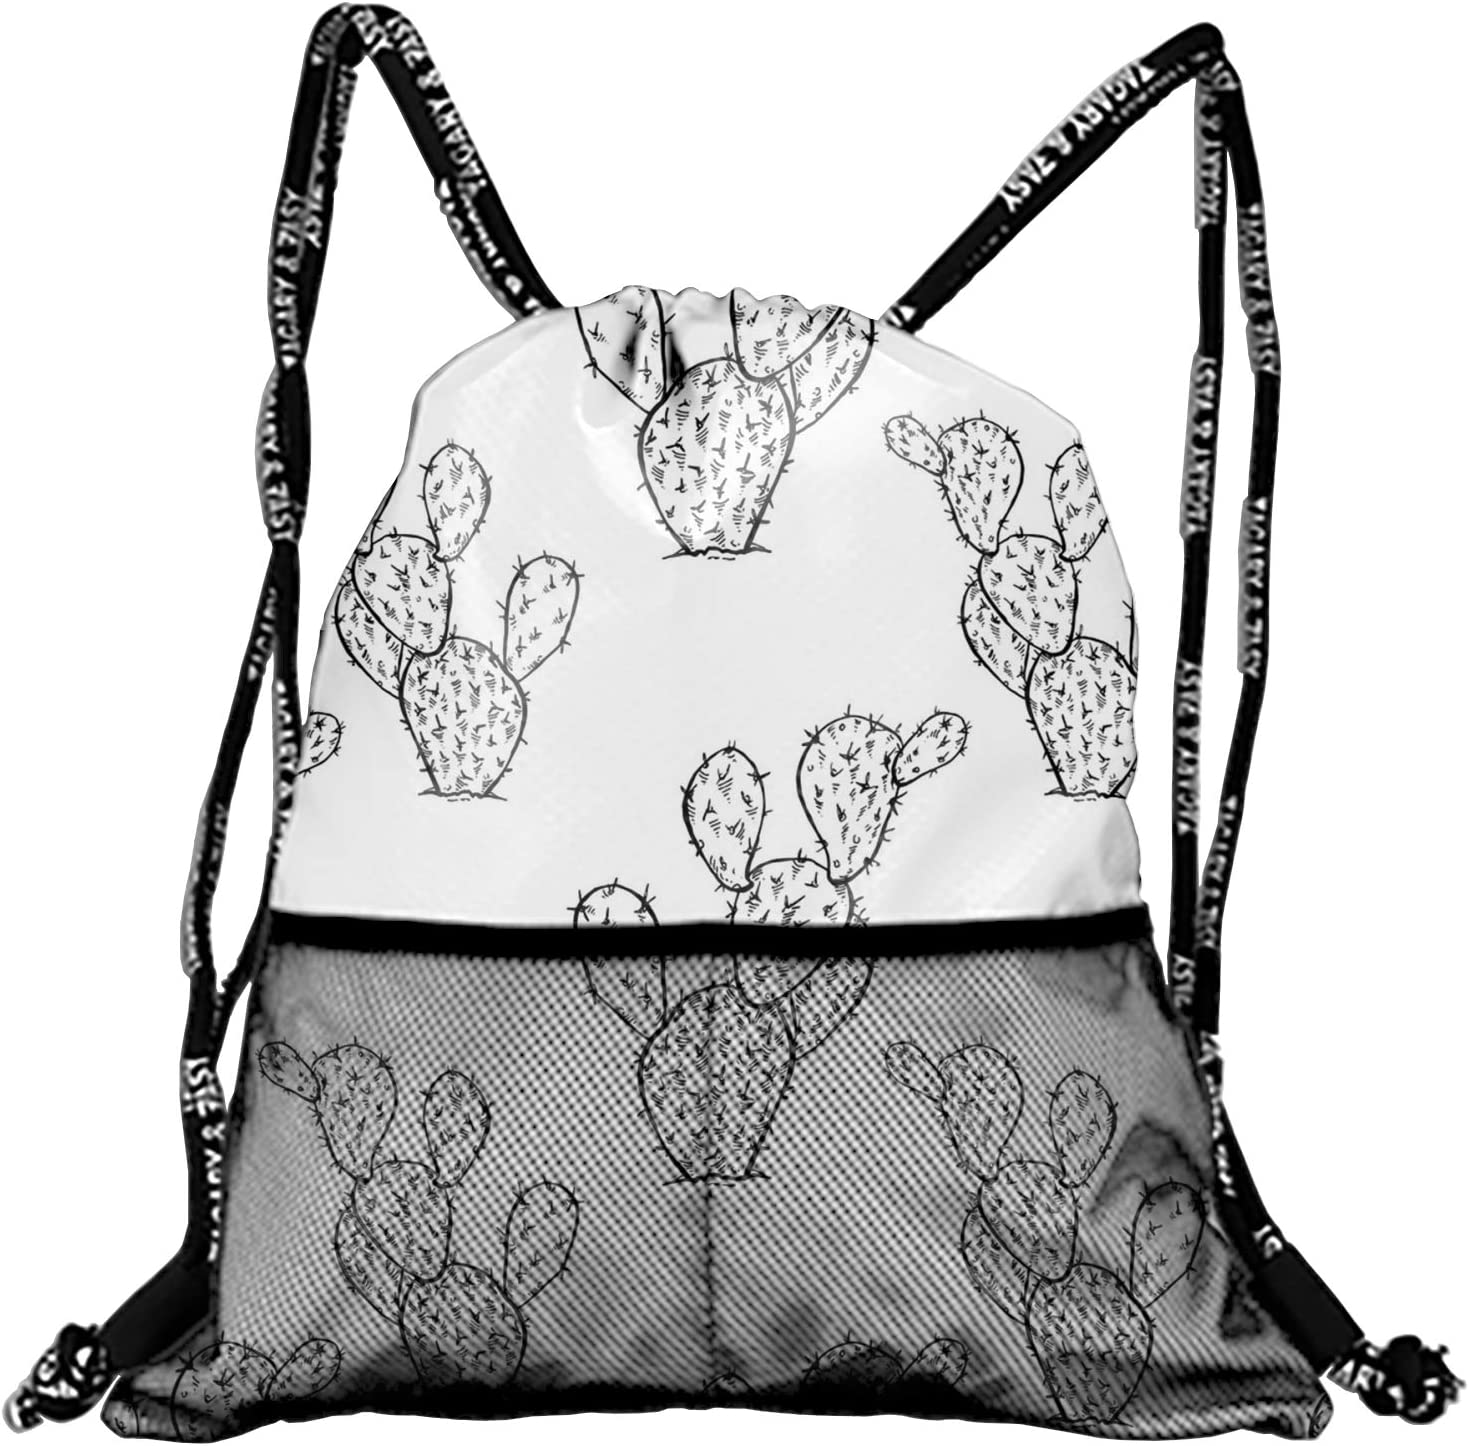 Unisex Cactus Seamless Fashion Beam Mouth Backpack/&drawstring Double Shoulder Bag Drawstring Travel Backpack For Men And Women